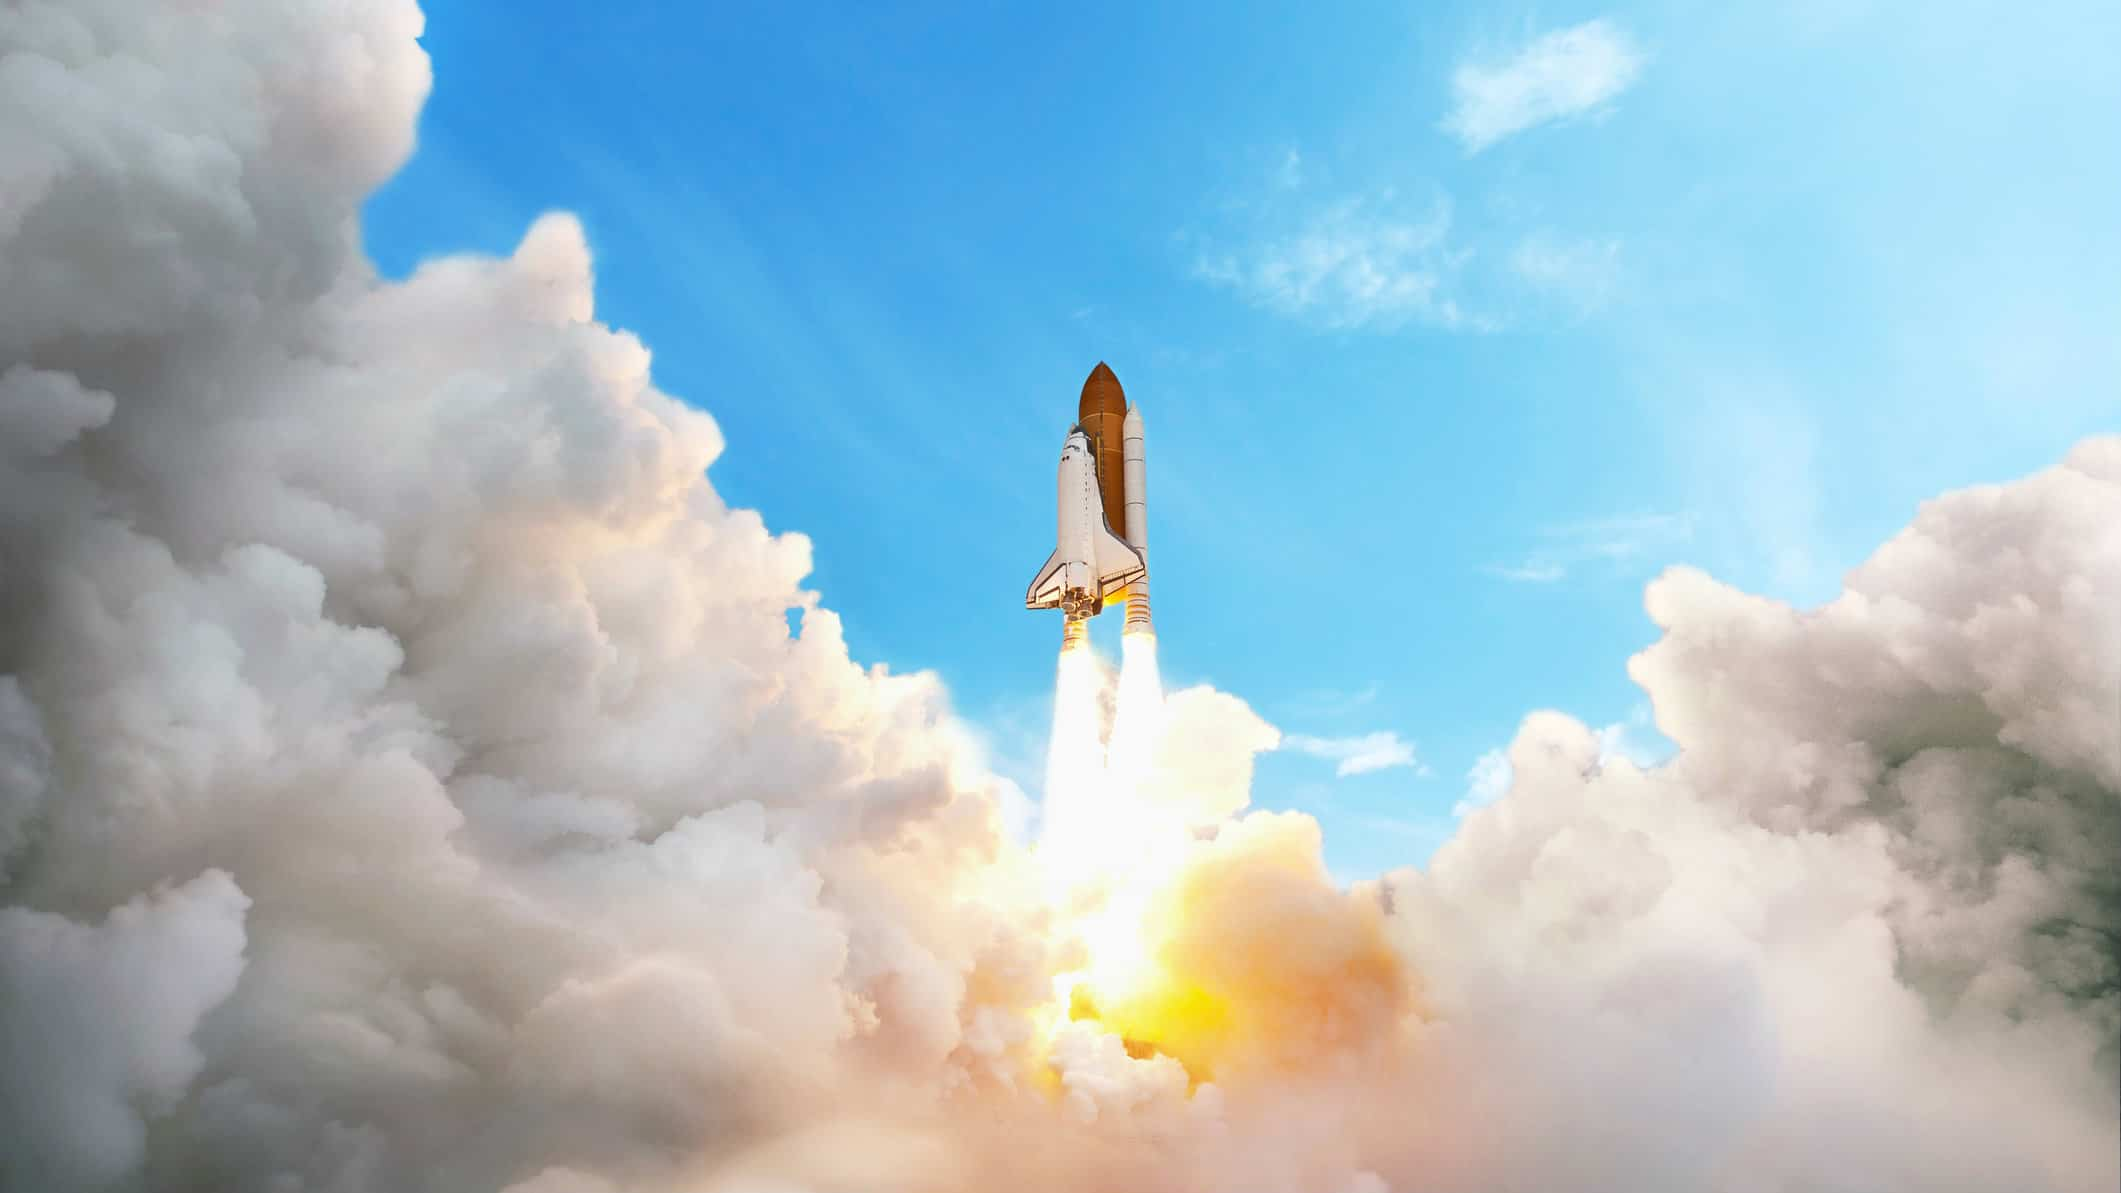 Rocket soaring through the sky